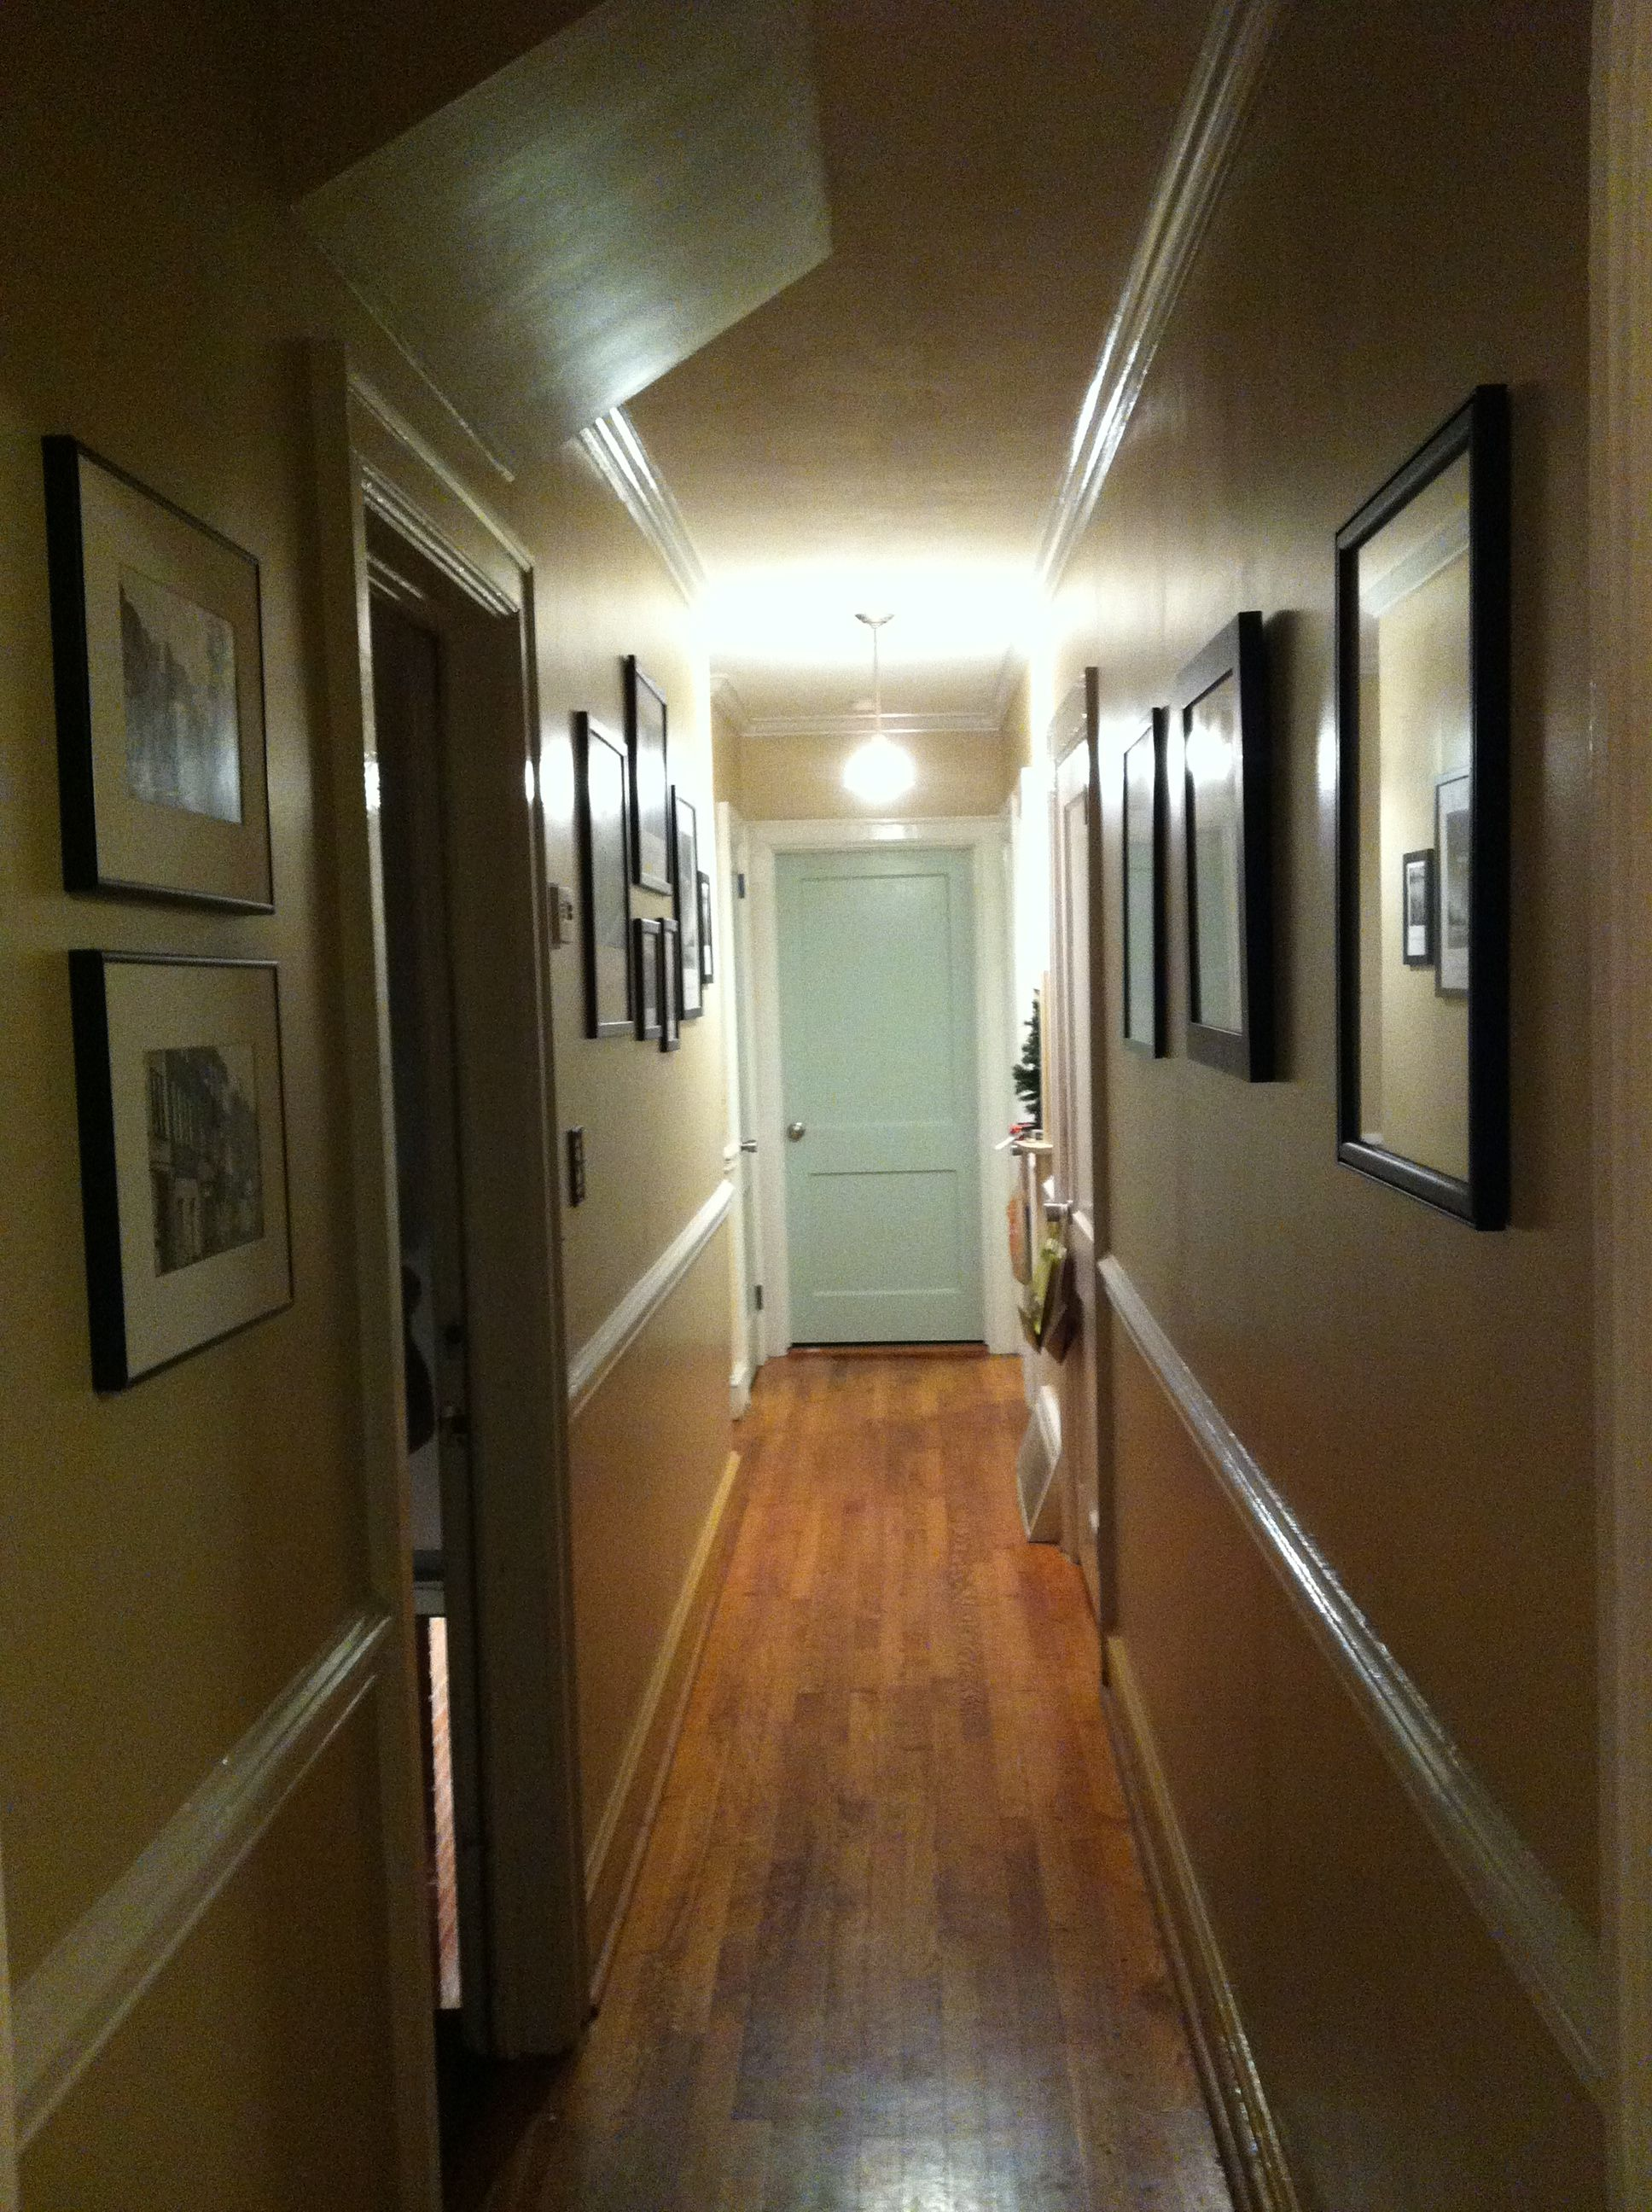 Paint Door At The End Of The Hallway To Brighten Up The Space Small Hallways Painted Doors Lighting Design Interior